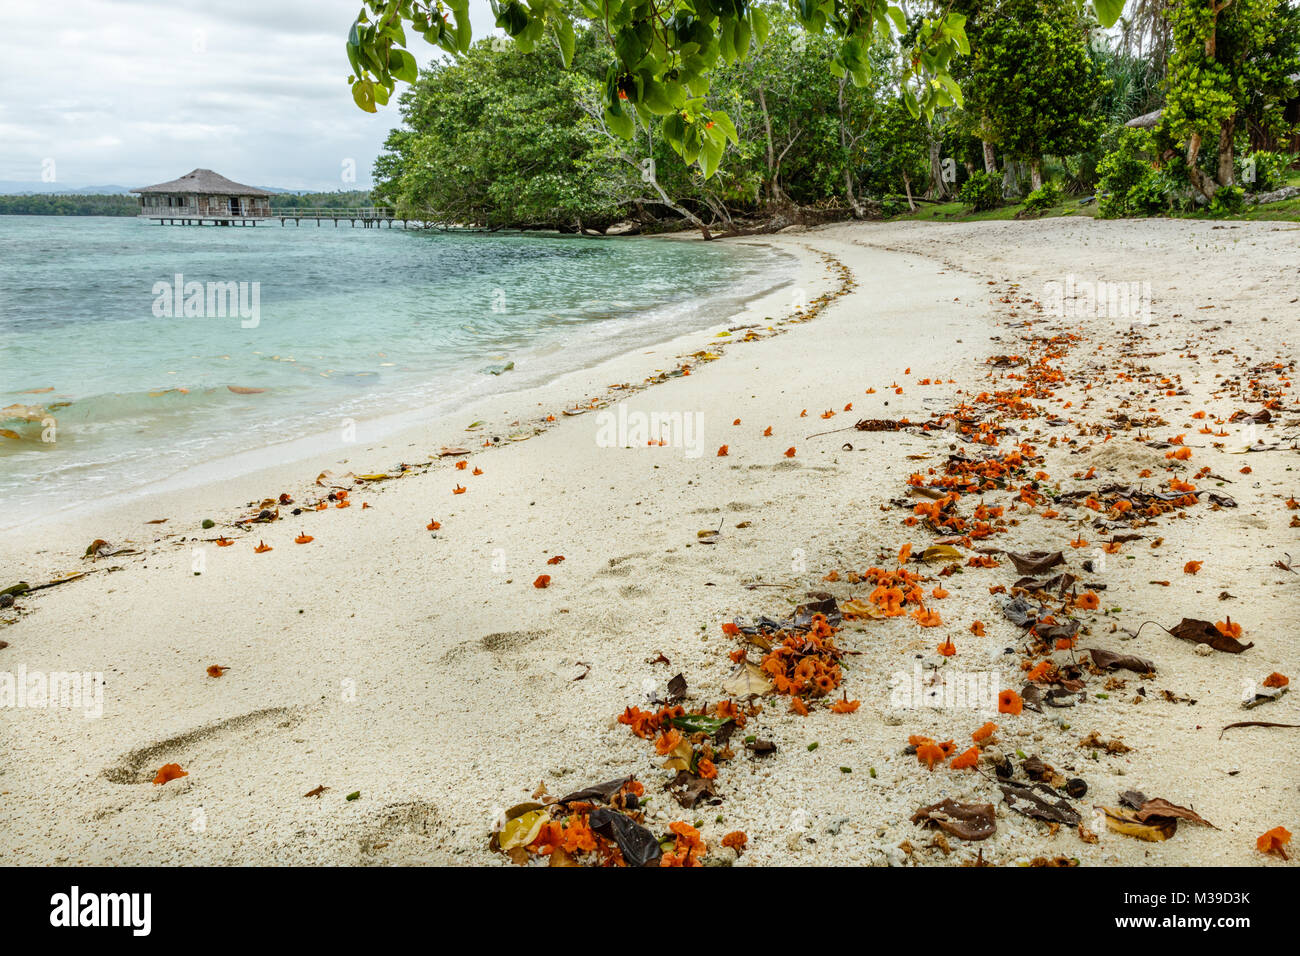 Sand beach with fallen flowers and footprints. Ratua Private Island, Republic of Vanuatu - Stock Image